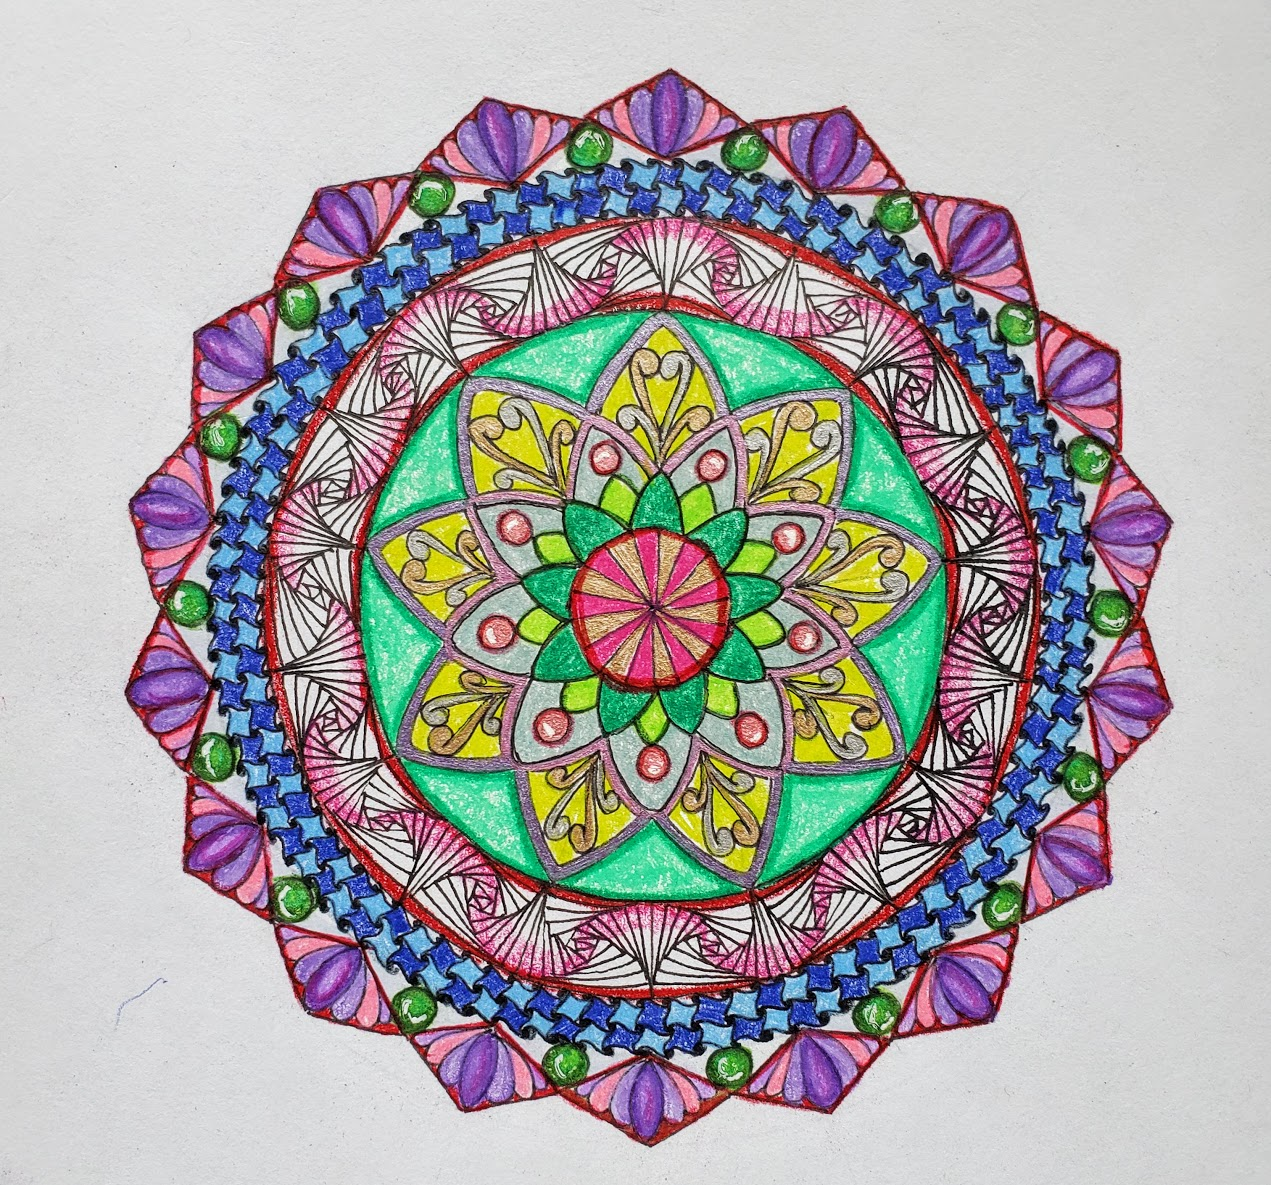 Hump Day Zentangle Challenge, Mandala Zendala